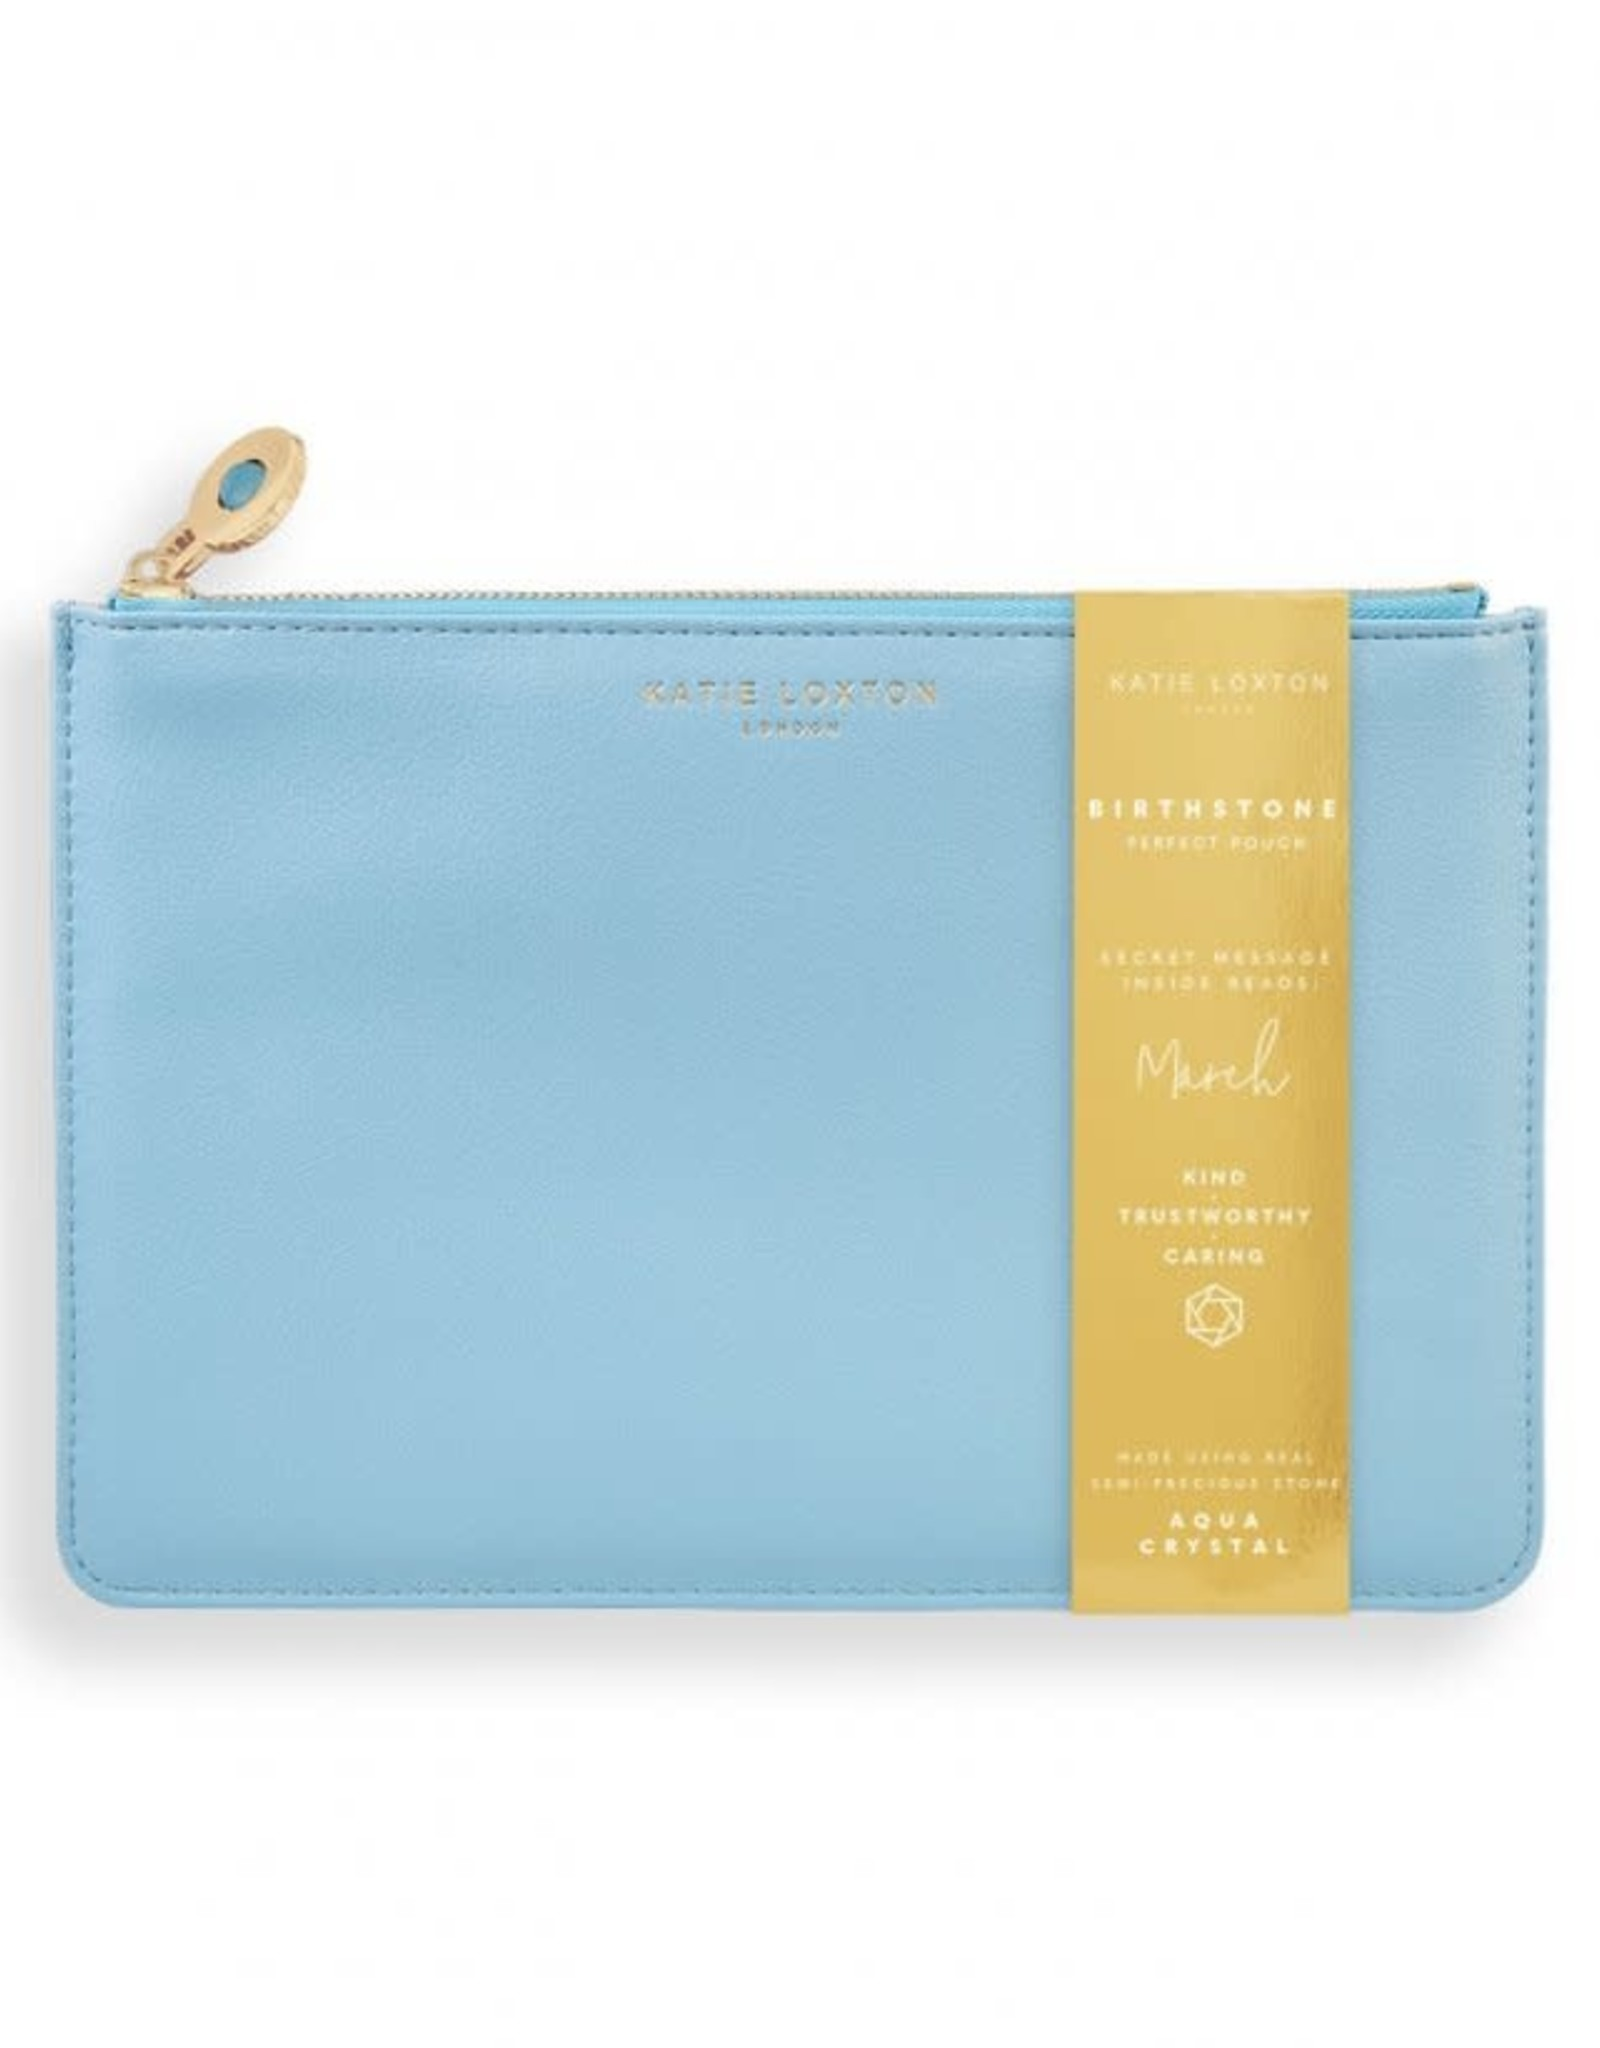 Katie Loxton The Birthstone Perfect Pouch March